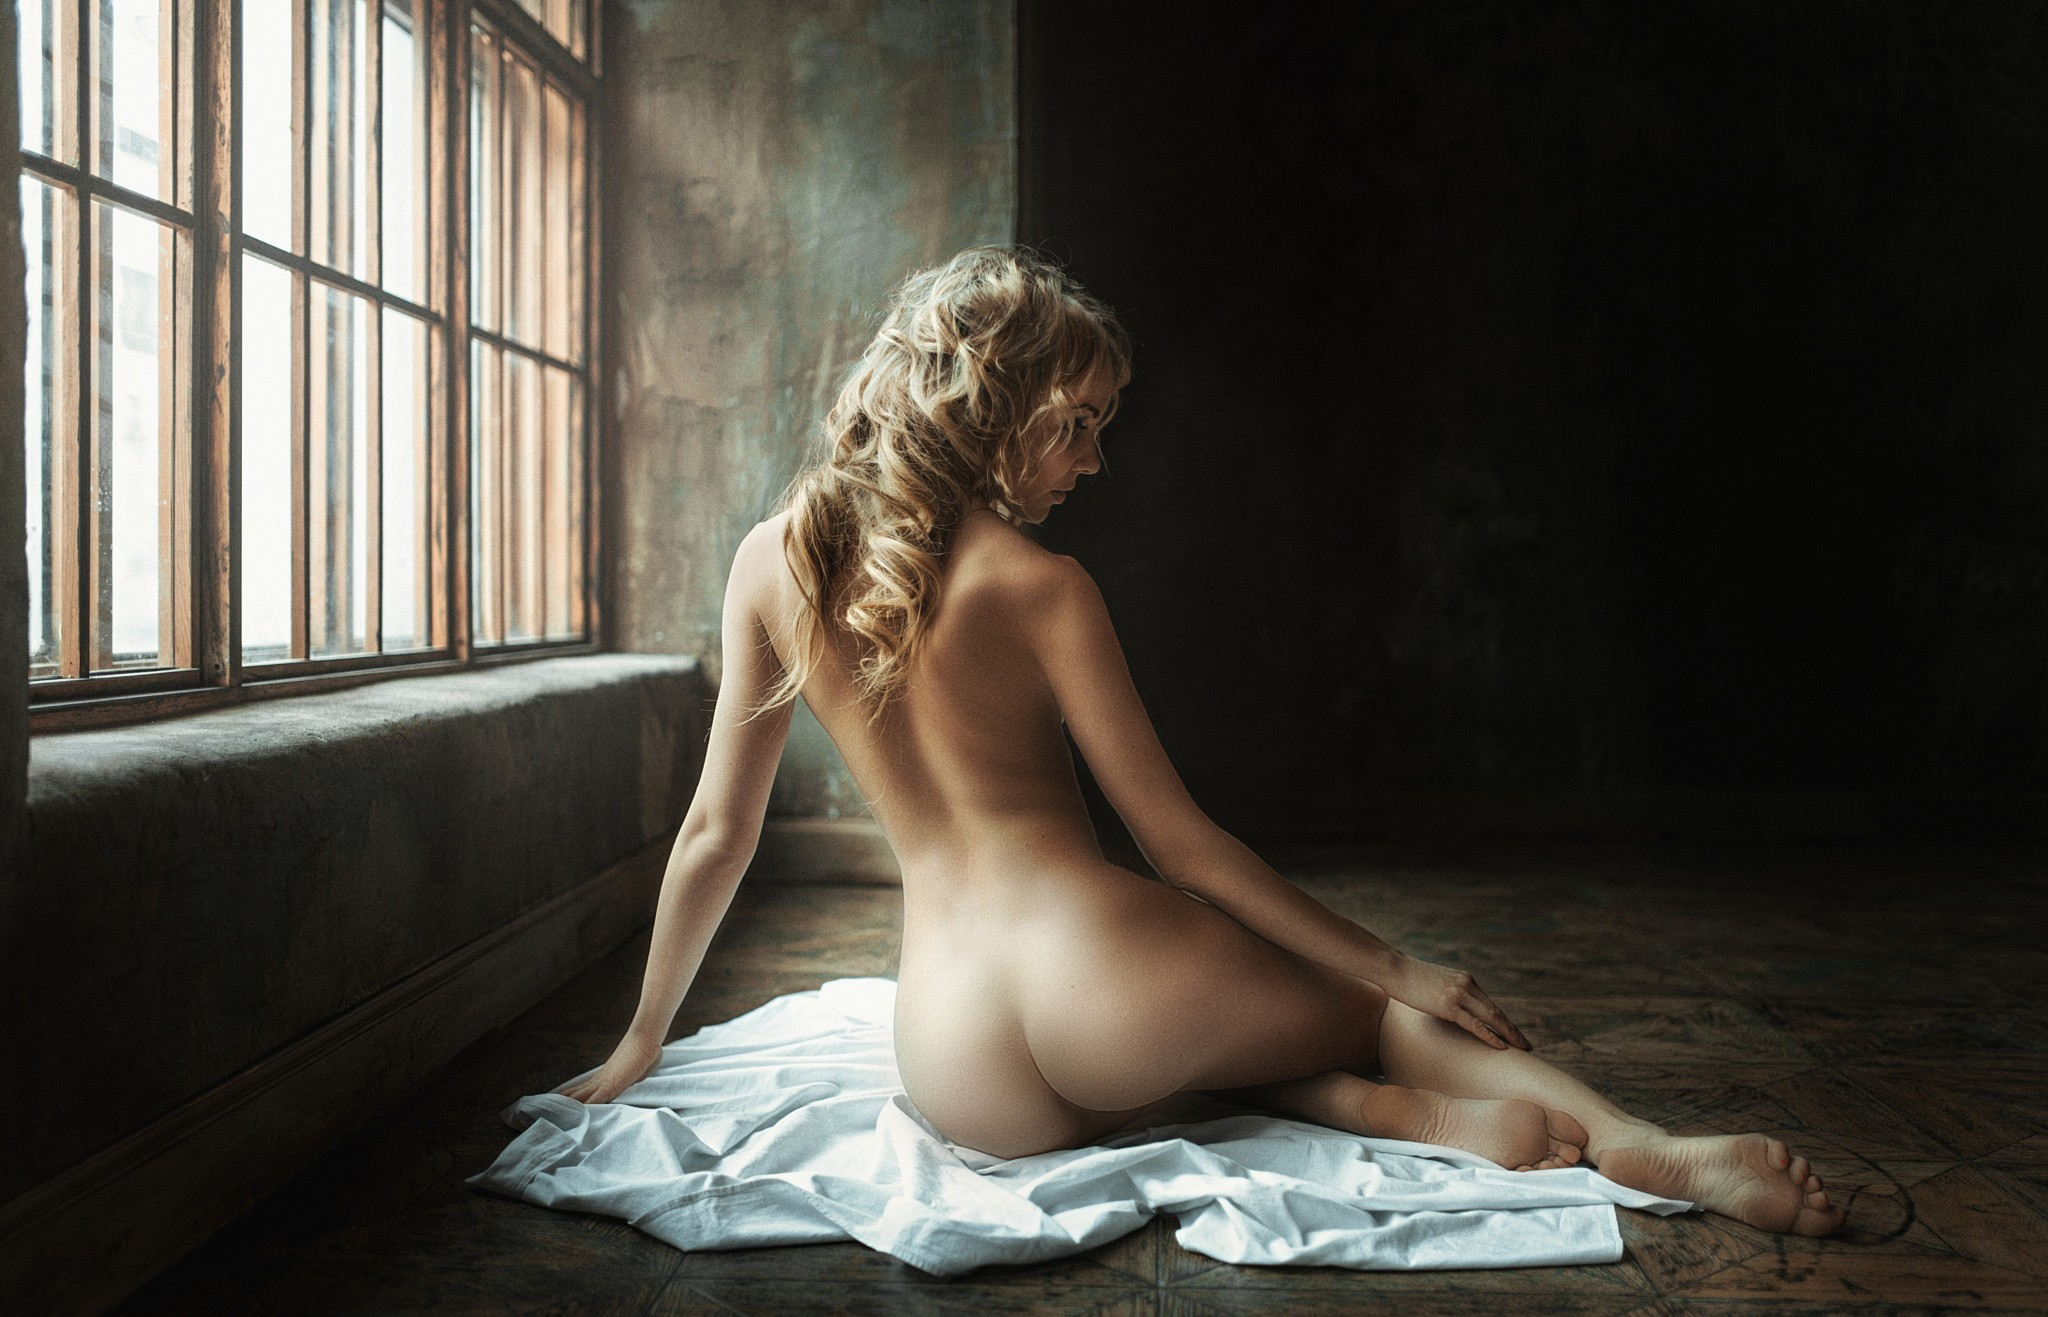 Nude art photography class with lindsay adler